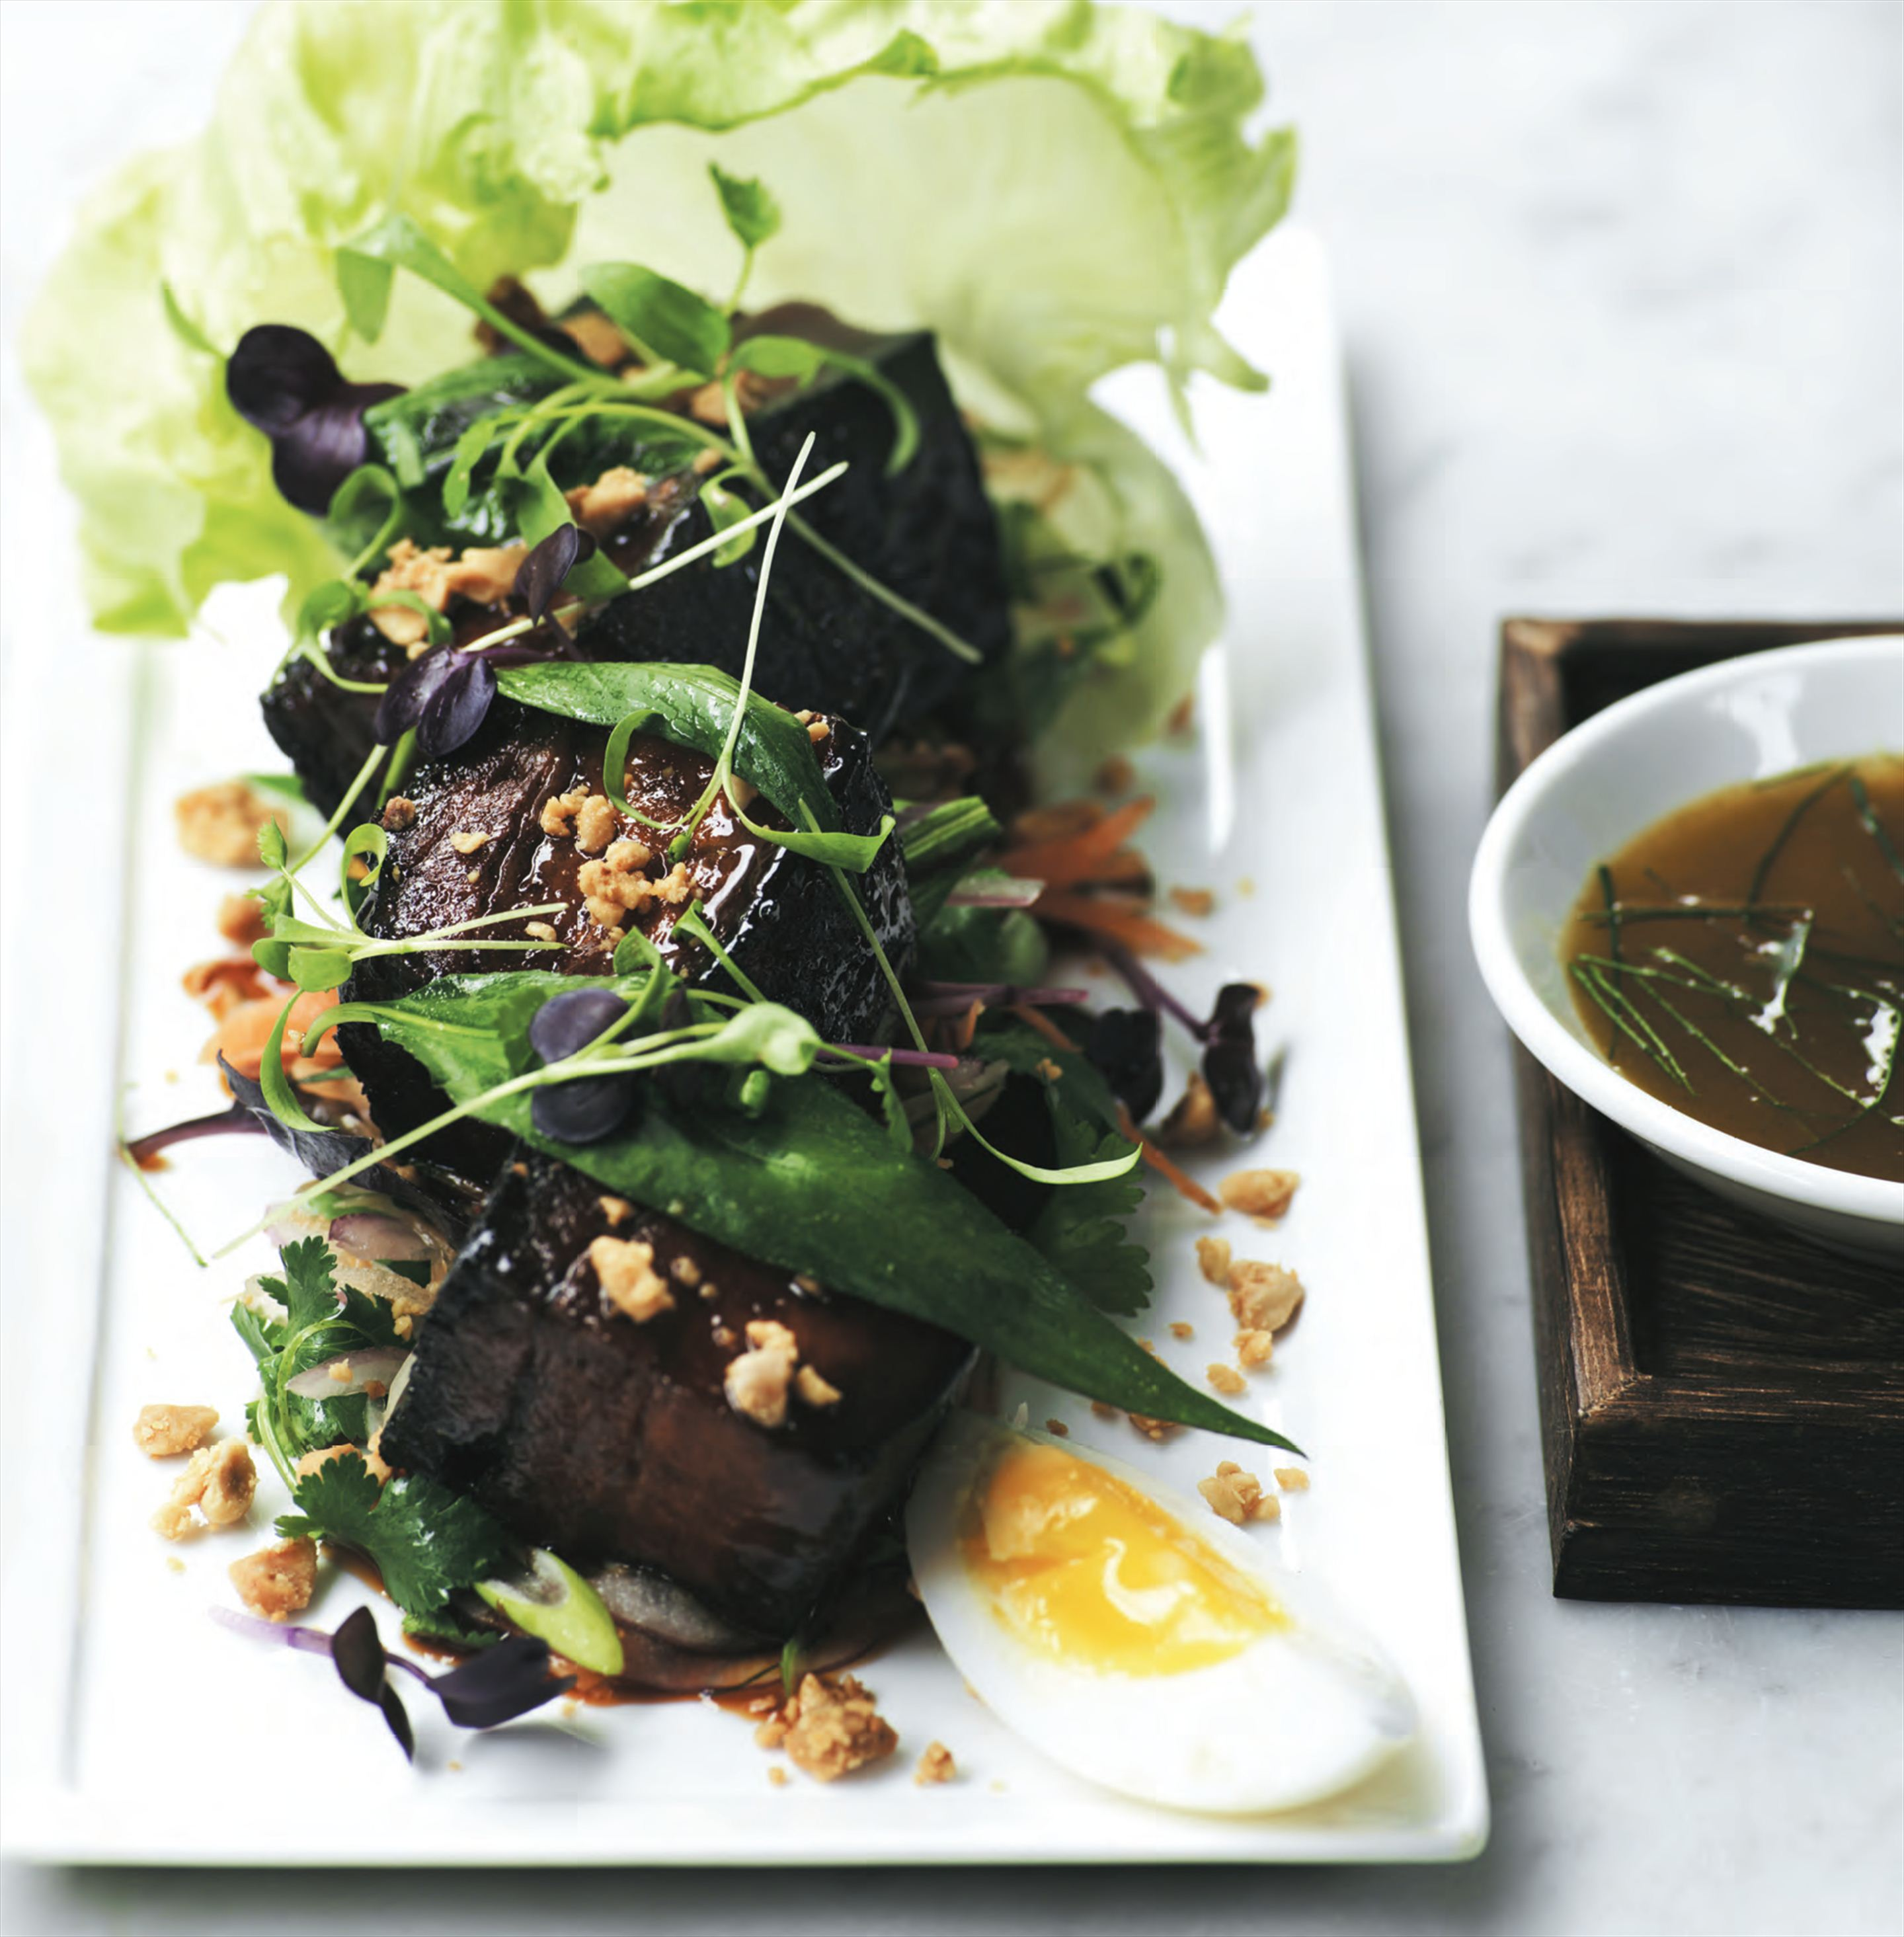 Sticky pork salad with Thai herbs